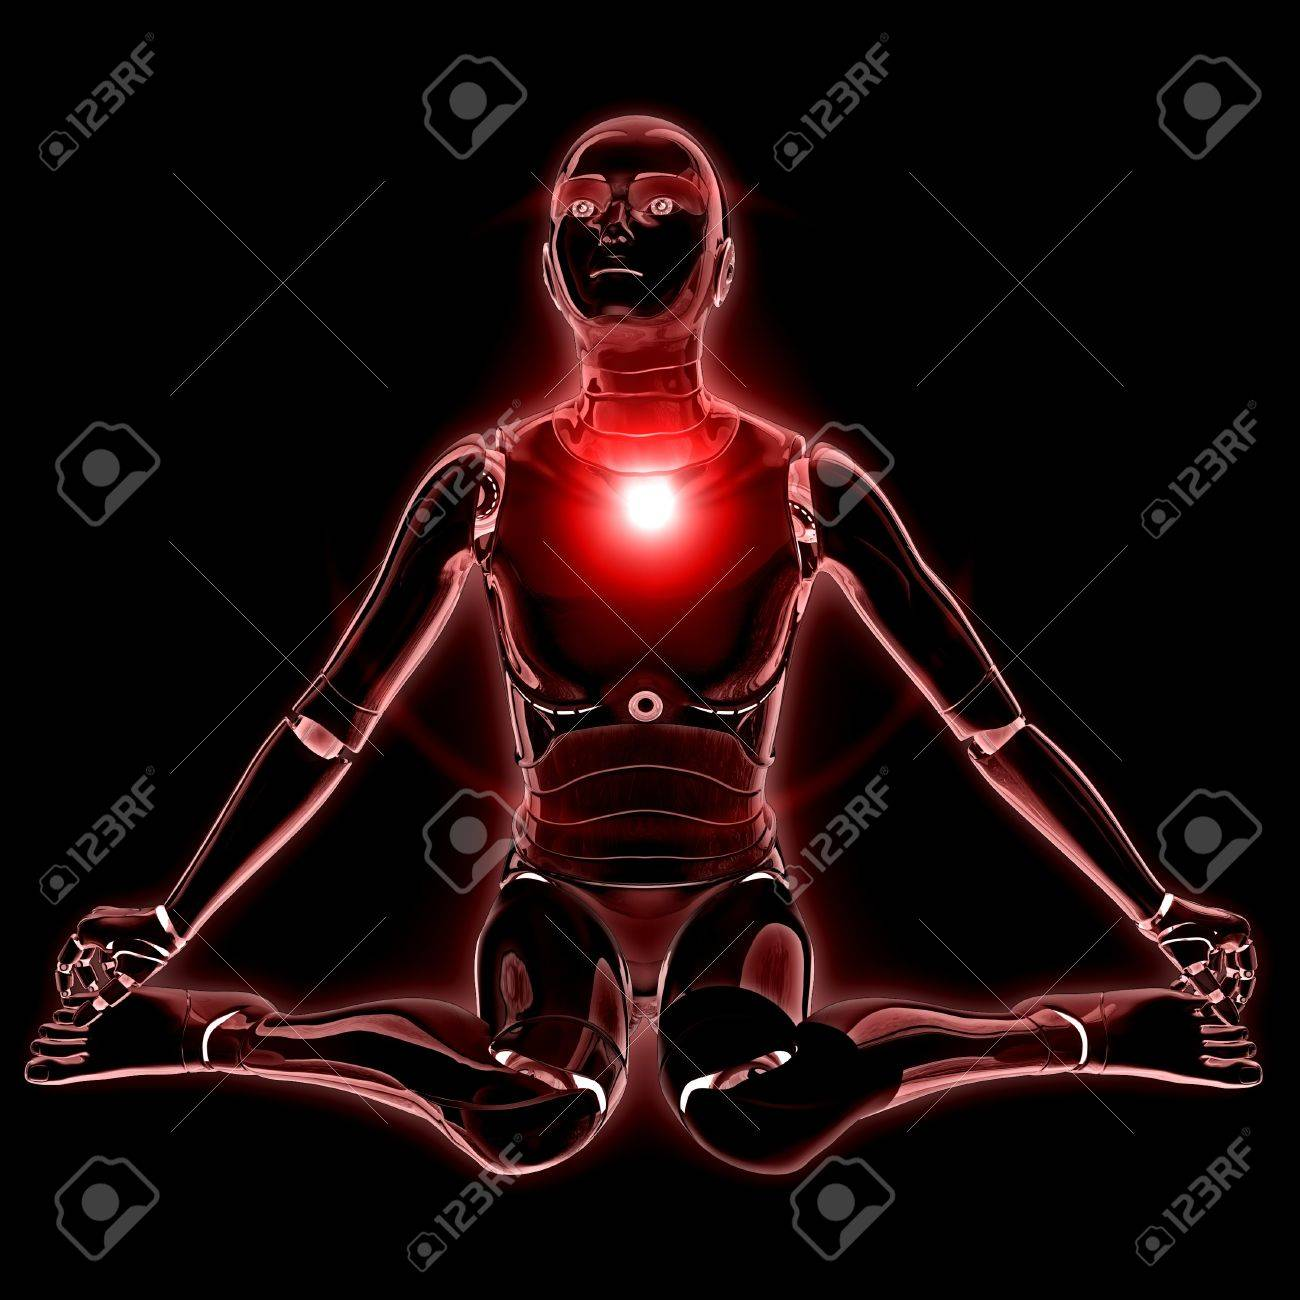 Humanoid robot glowing with flare over black background. Stock Photo - 19110280